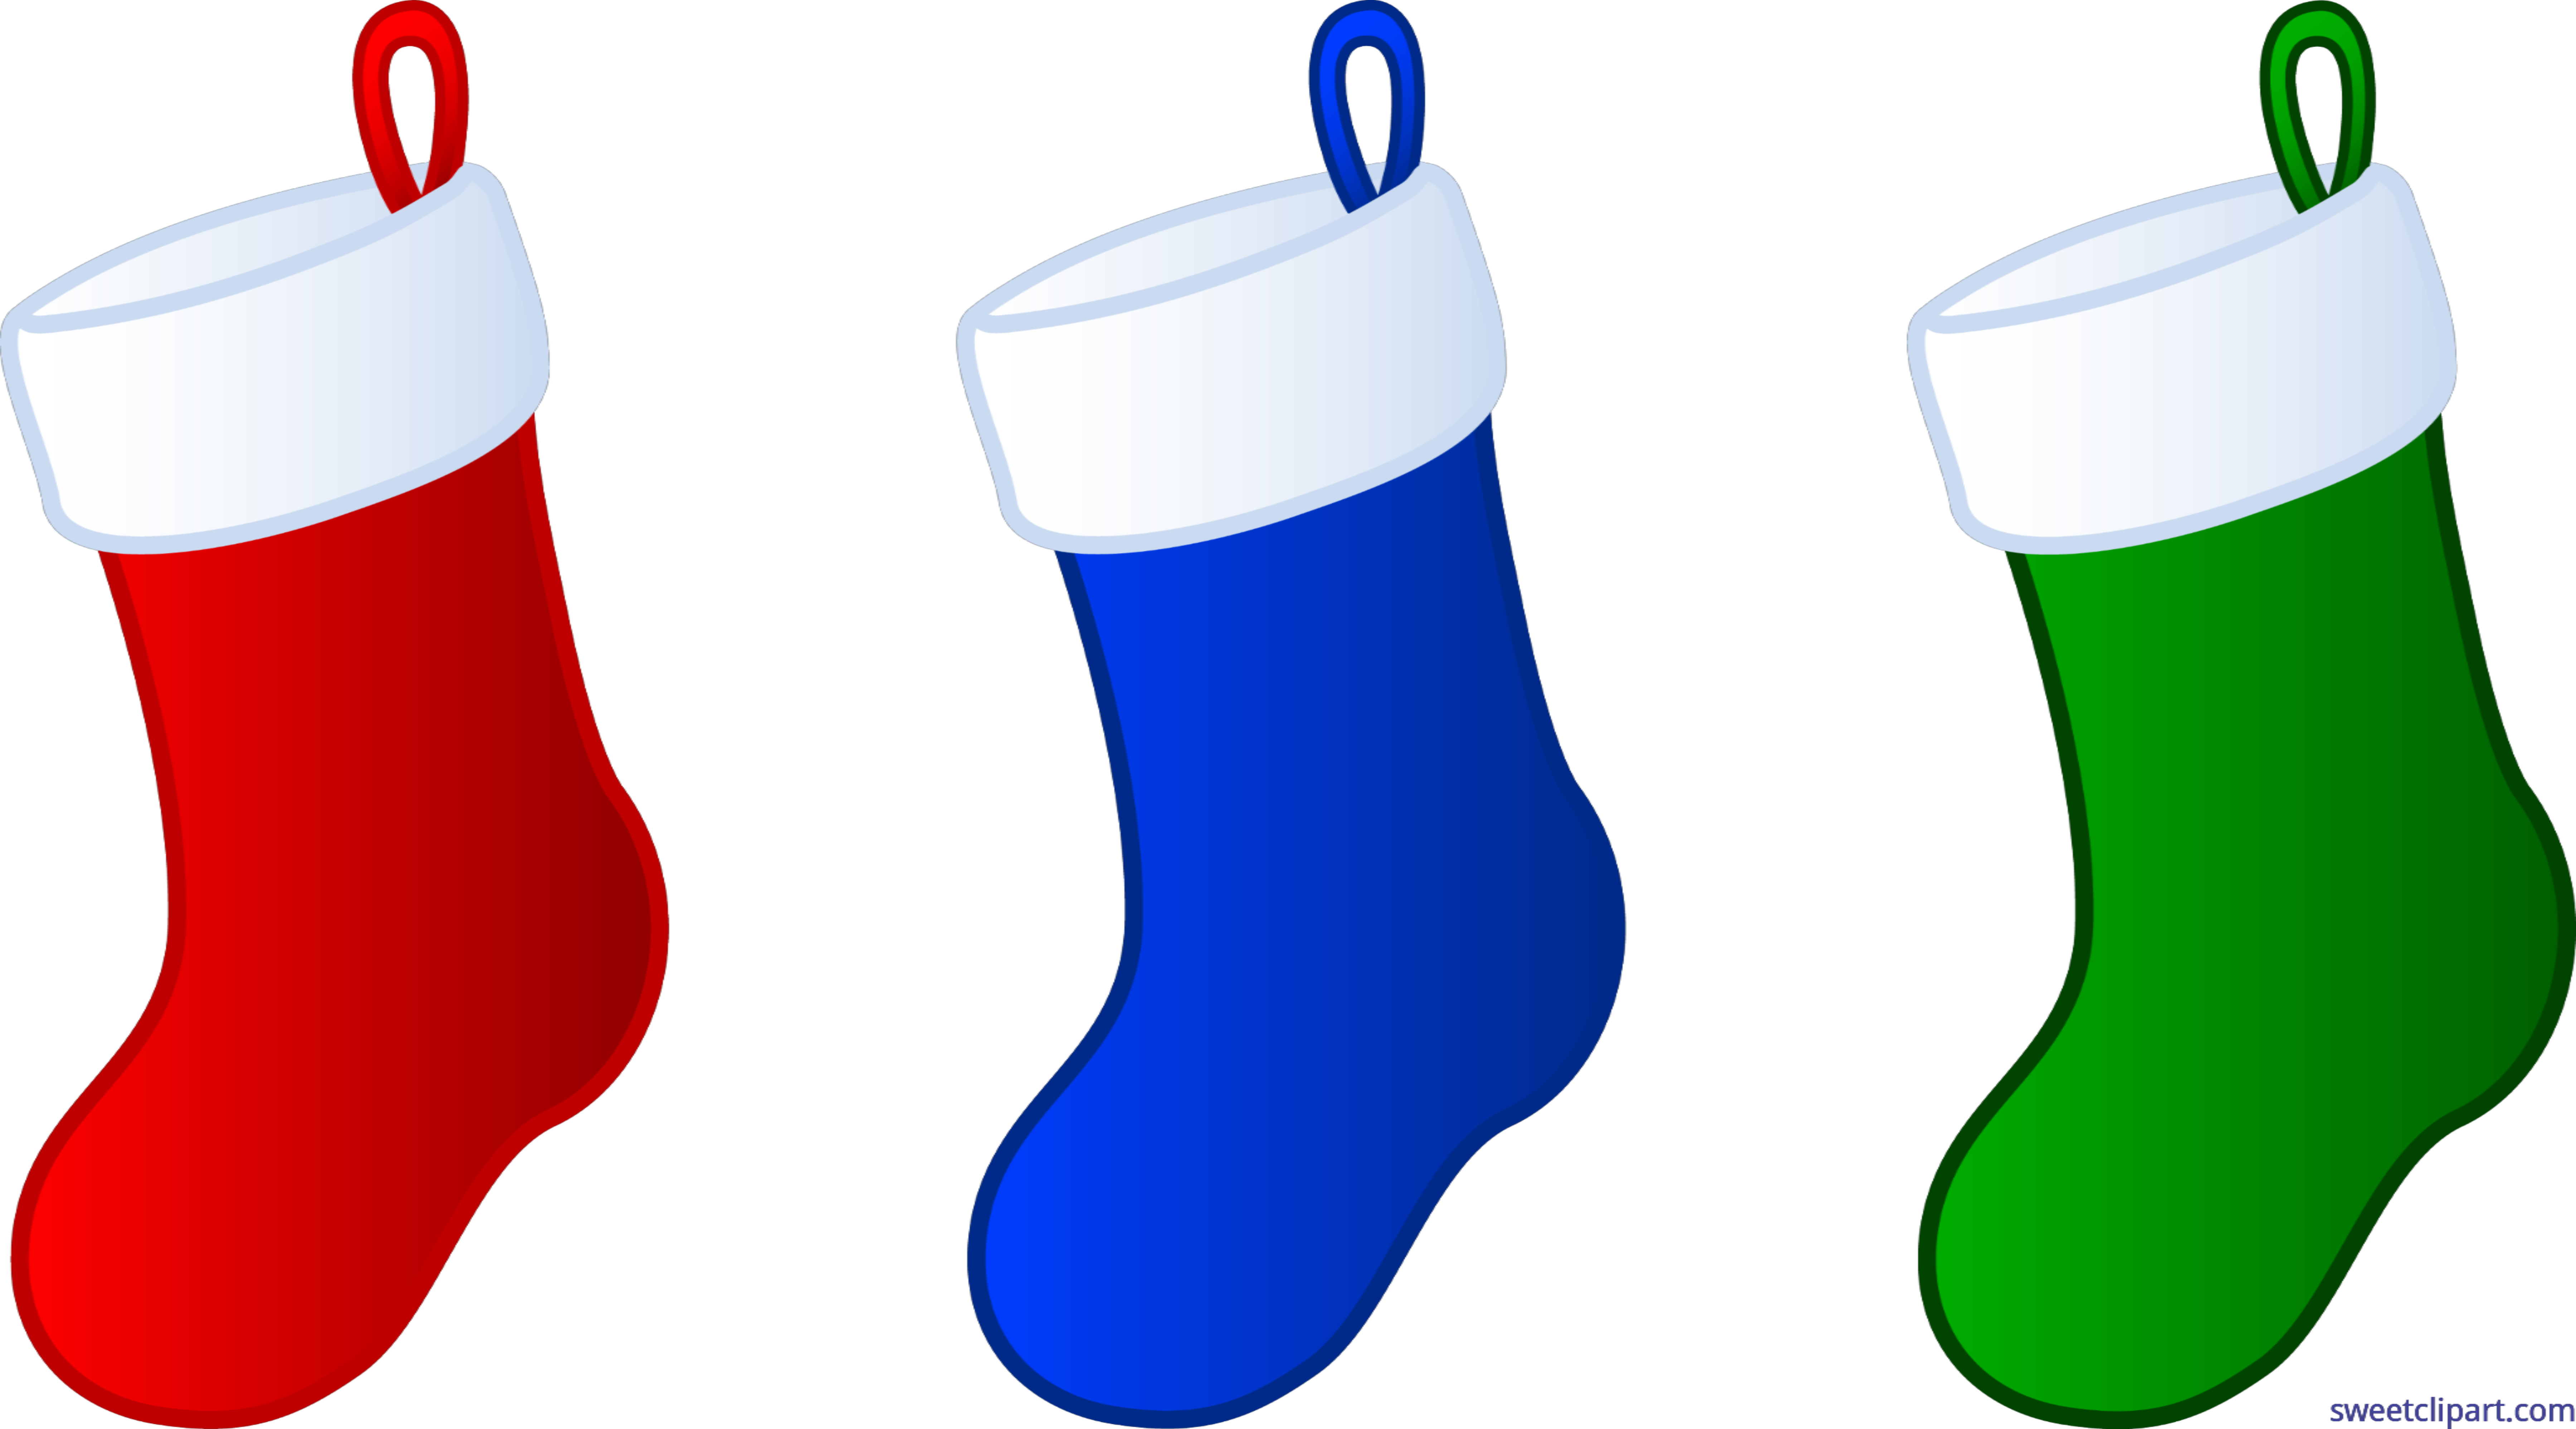 Stocking vector xmas. Christmas stockings clip